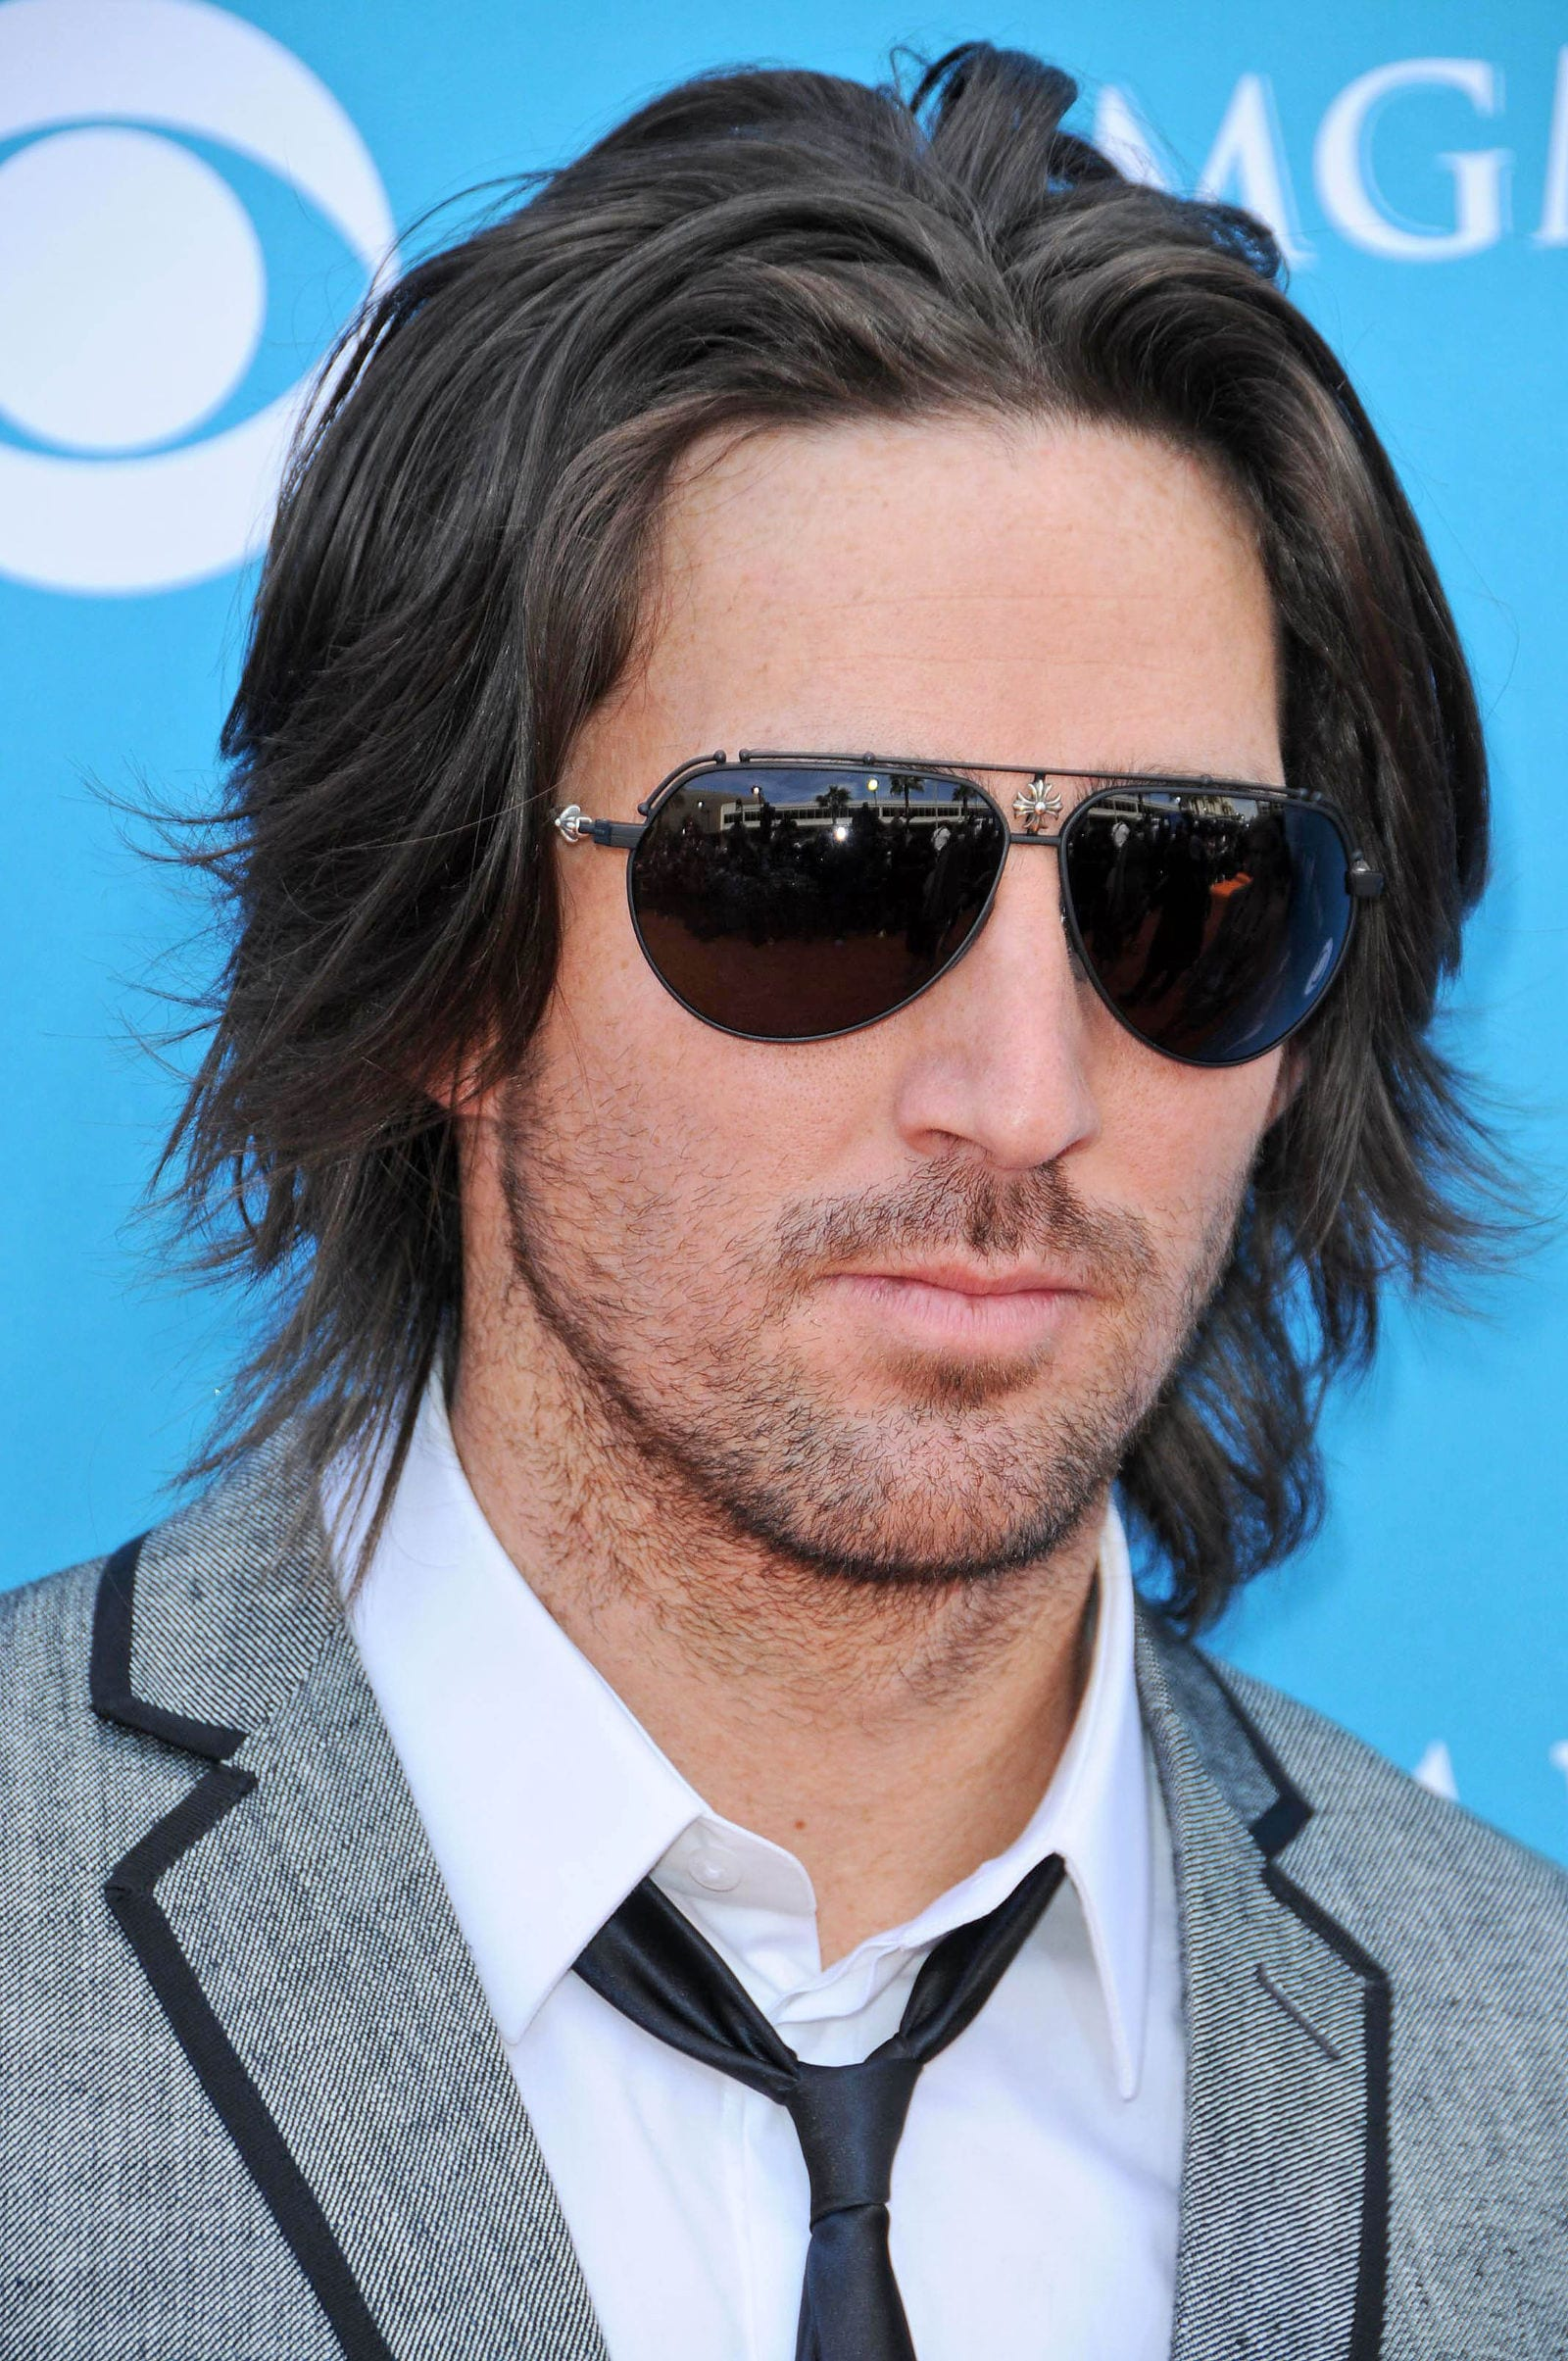 Jake Owen long hair flow glasses by s_bukley